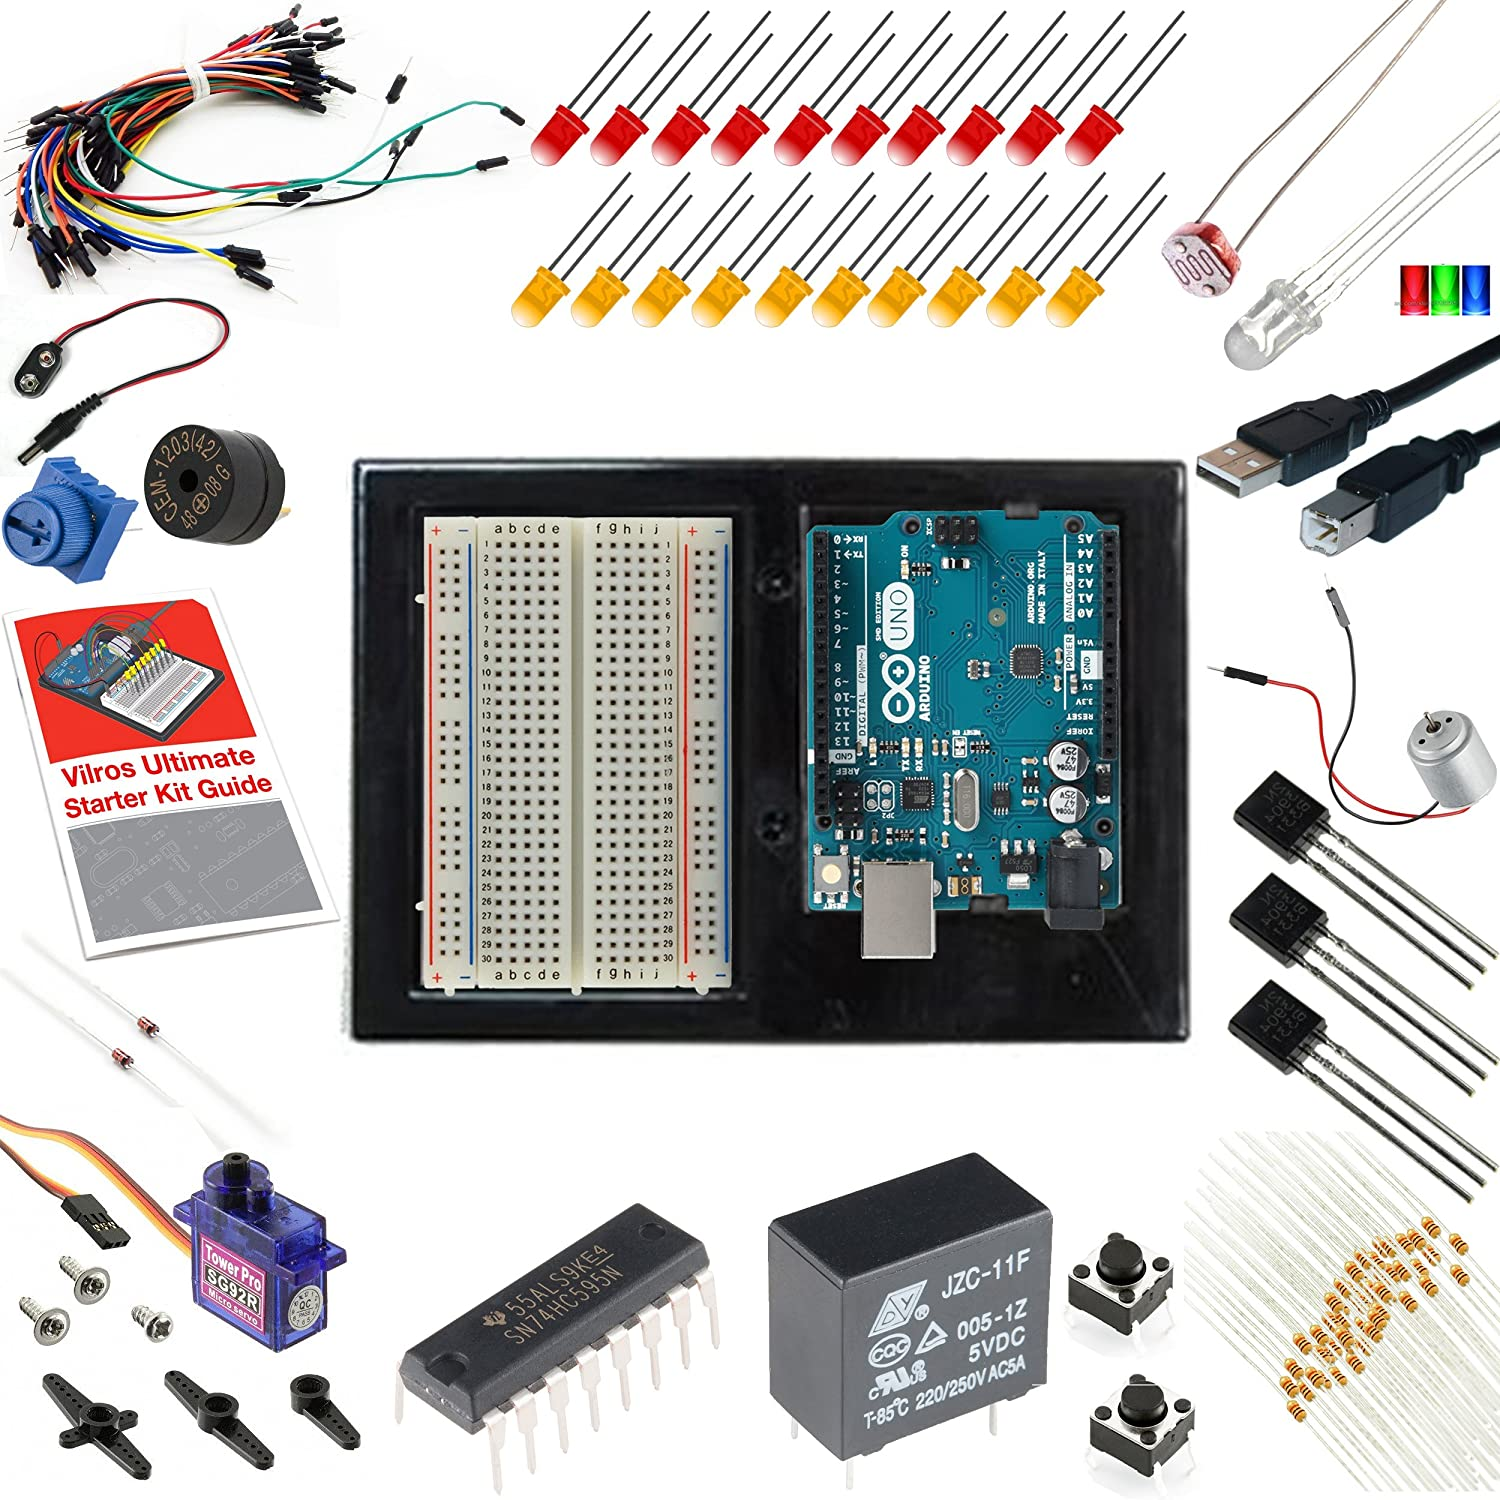 Vilros Arduino Uno 3 Ultimate Starter Kit Includes 12 Guide To Be An Electronic Circuit Design Engineer Rc Learning Computers Accessories